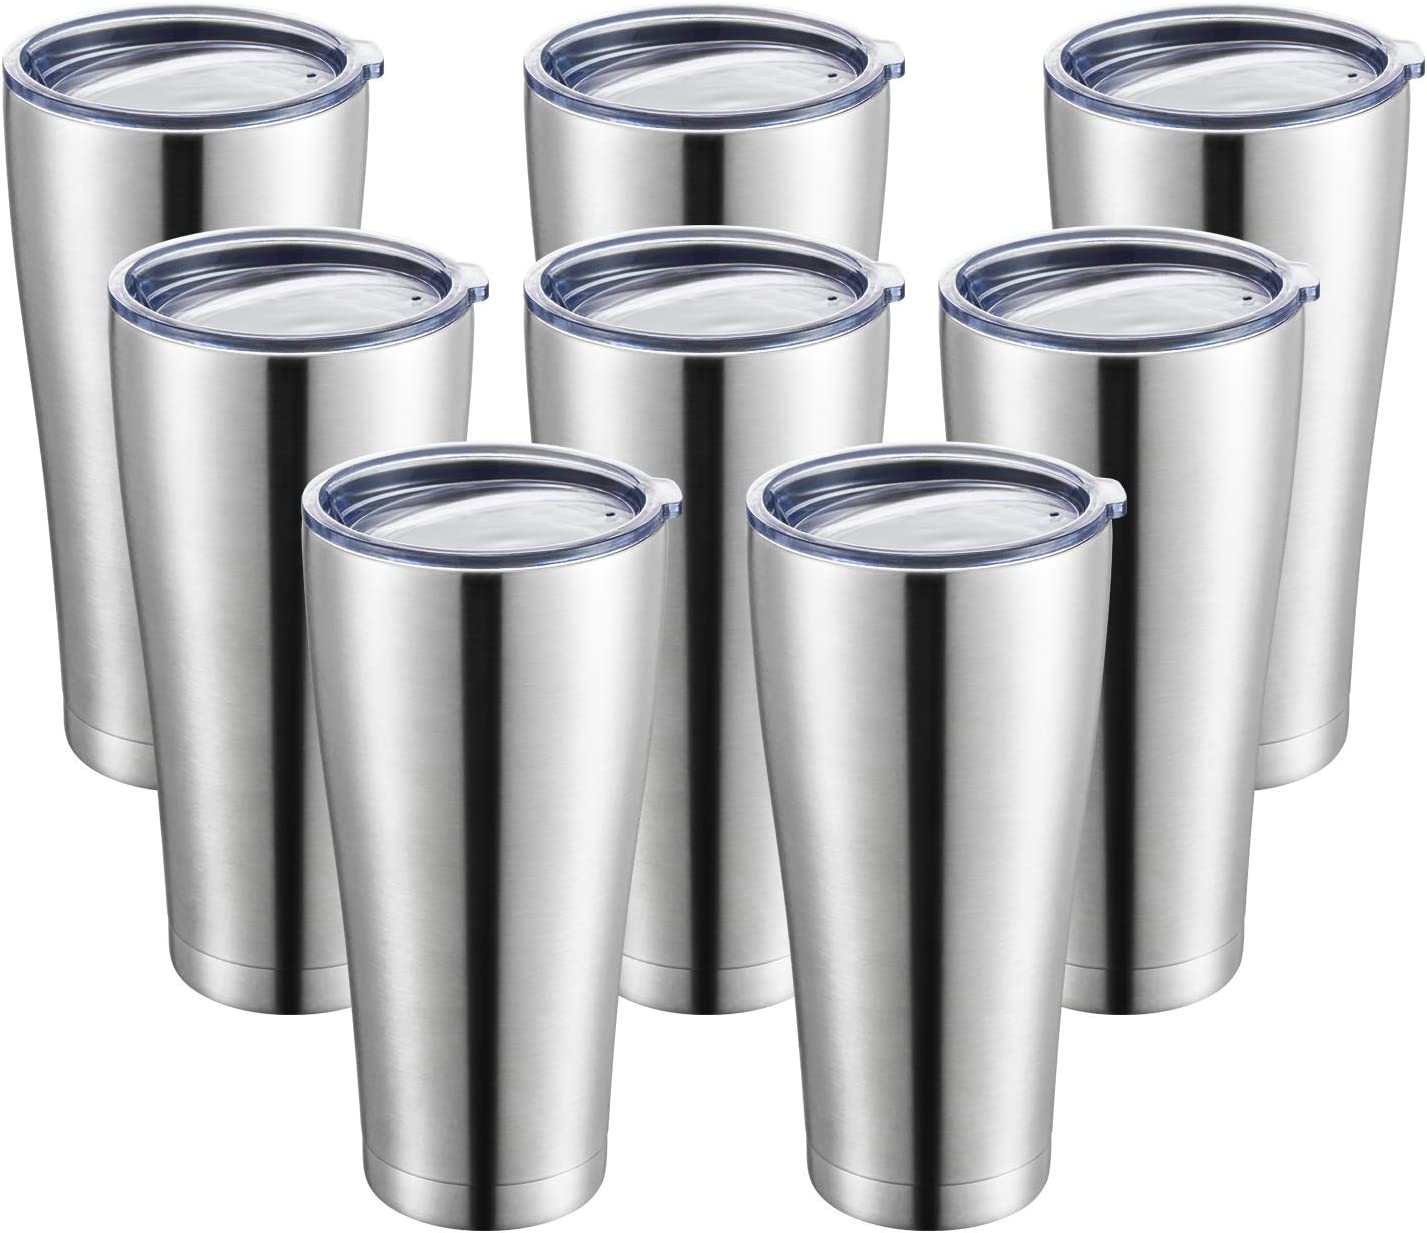 COMOOO 32oz Tumbler Insulated with Lid Stainless Steel Large Coffee Mug Double Wall Vacuum Thermos Coffee Tumblers for Cold Drinks and Hot Beverages (Silver, 32oz-8 Pack)